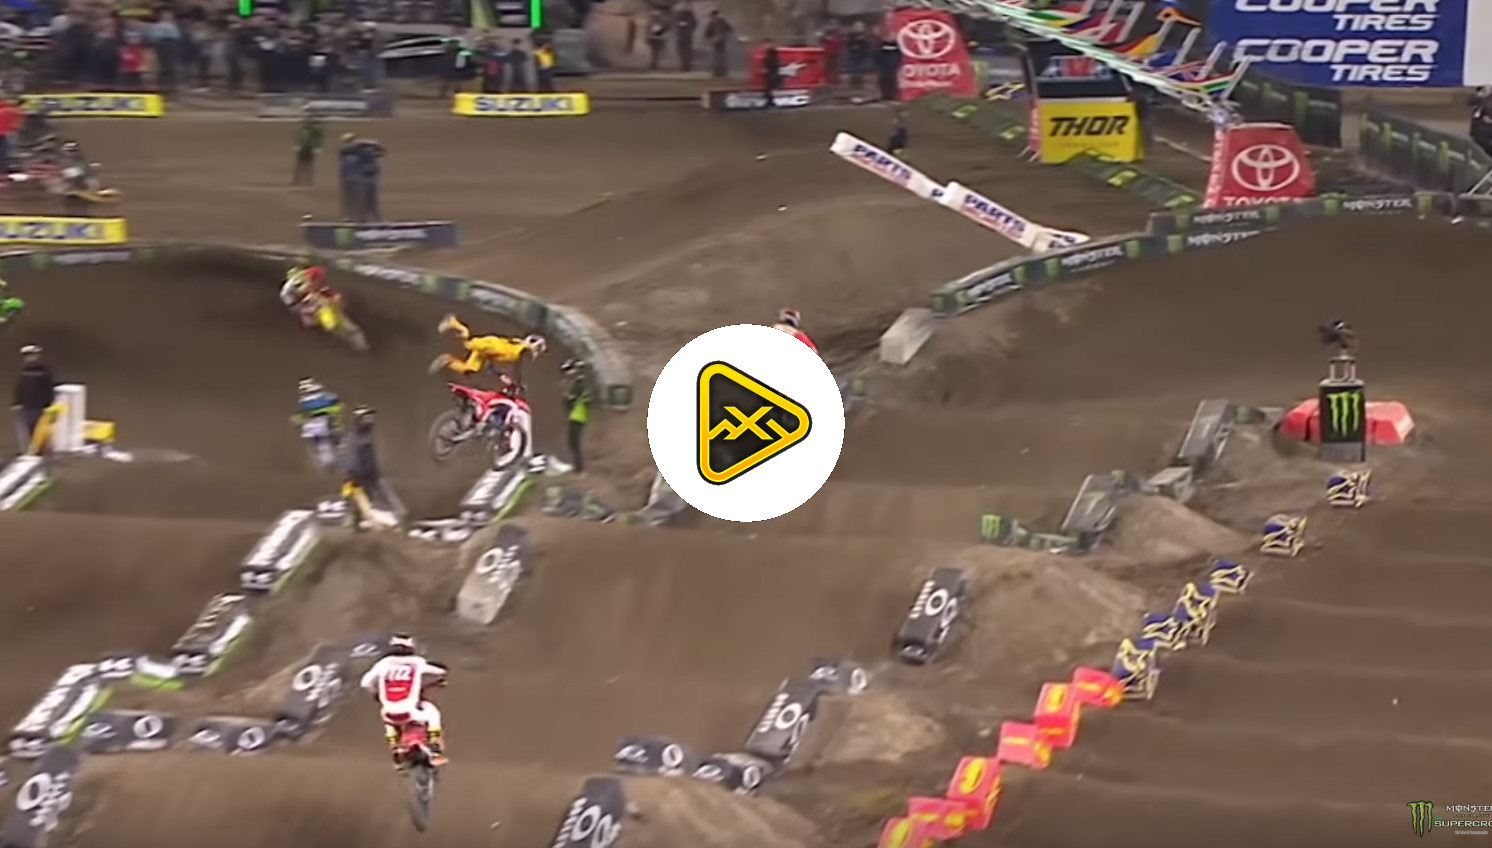 Ken Roczen's Past Crashes in Monster Energy Supercross